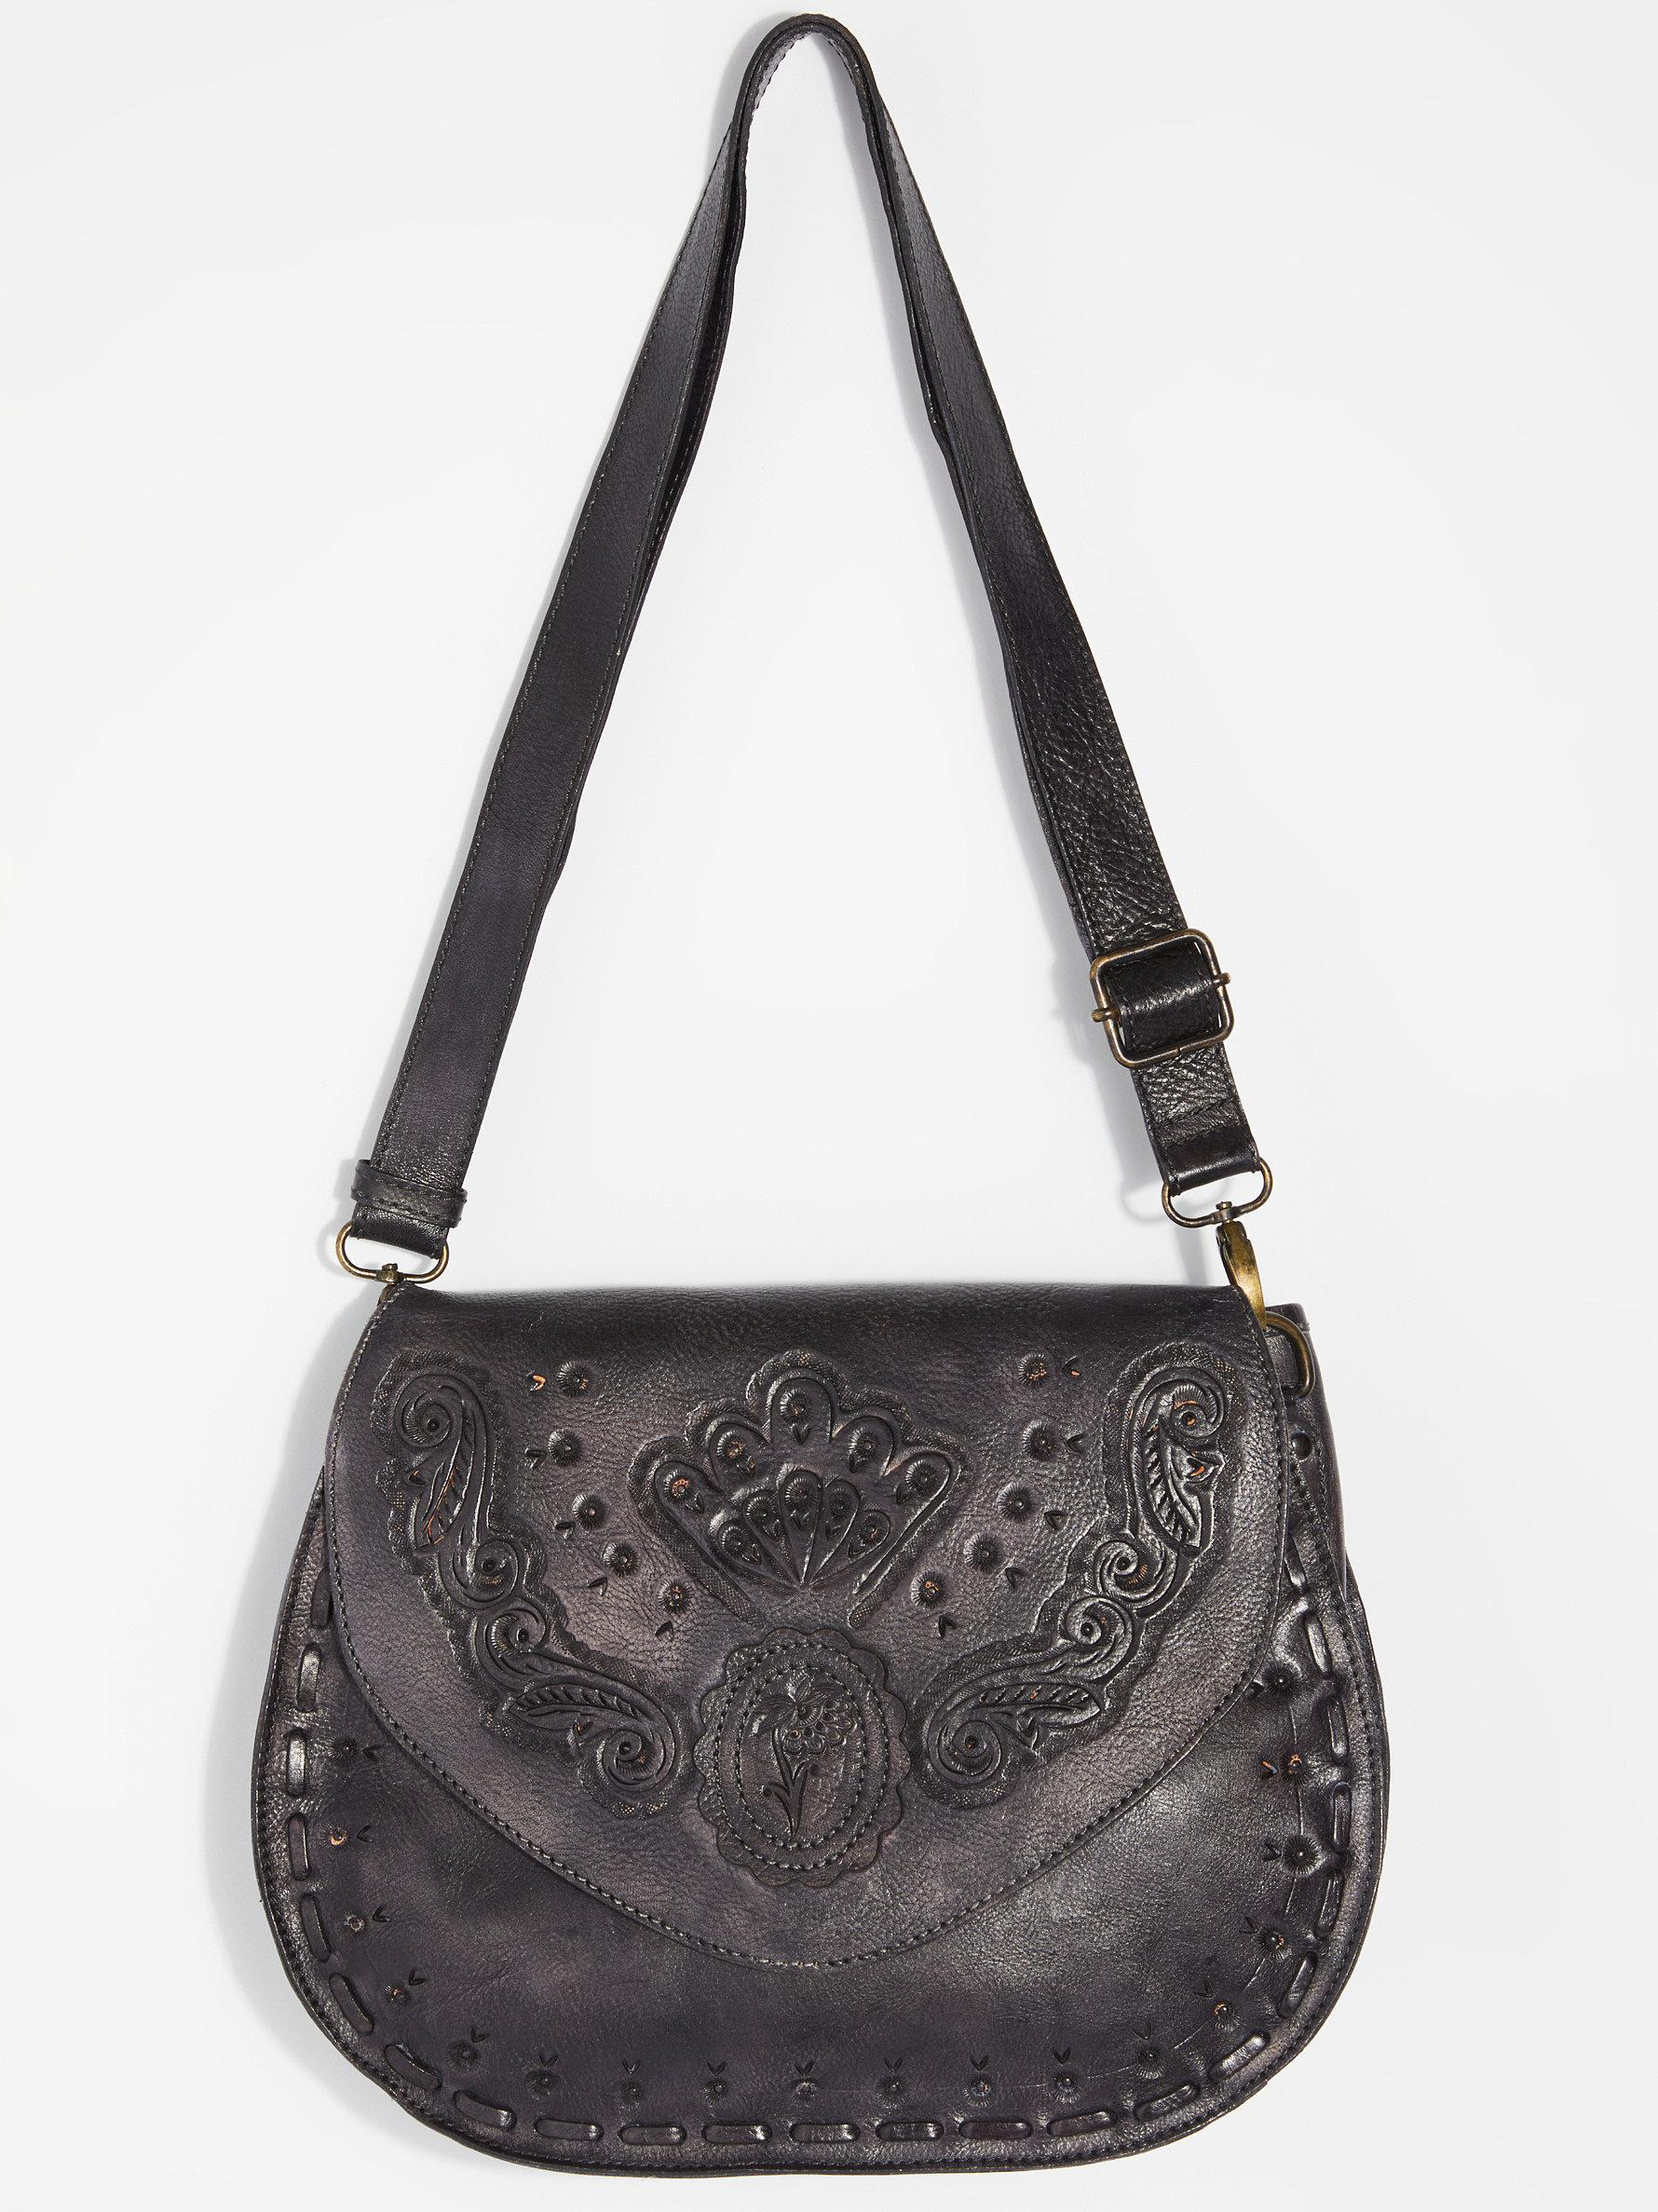 Lyst - Free People Anna Sui X Bedstu Sabanna Bag in Black 39c5055f6258f